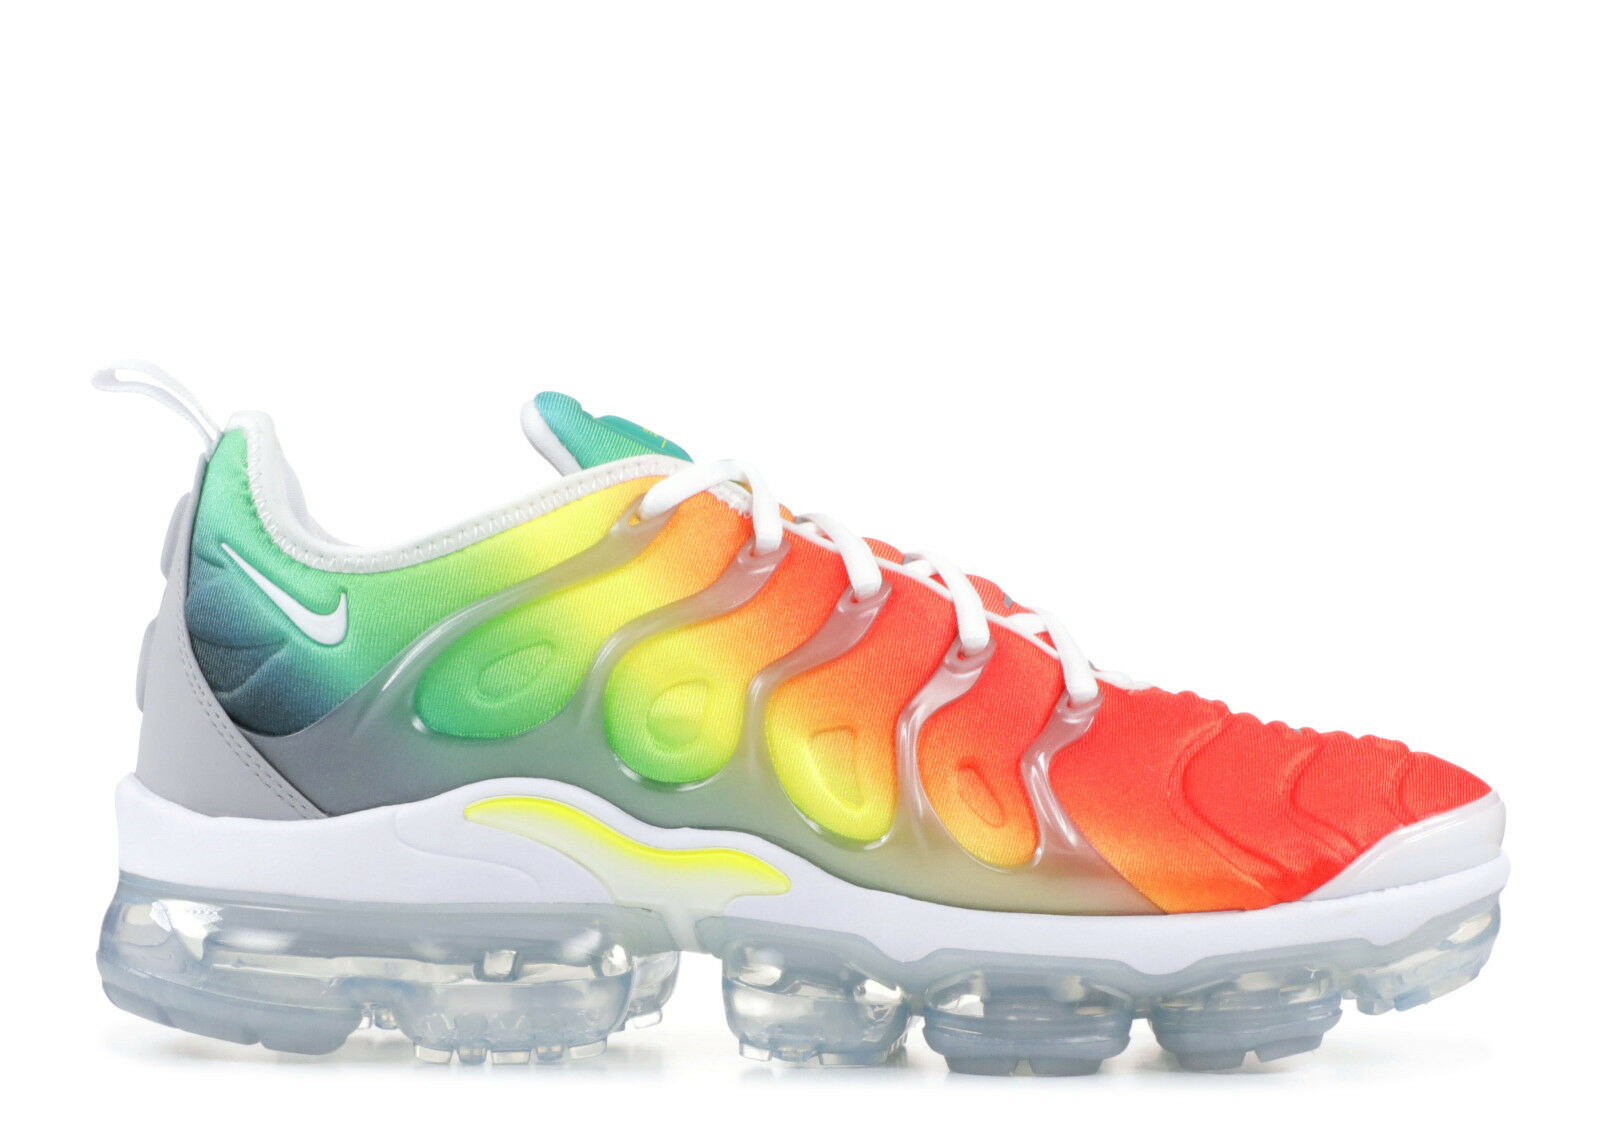 Nike Air Vapormax Plus Multicolor Rainbow Comfortable Comfortable and good-looking